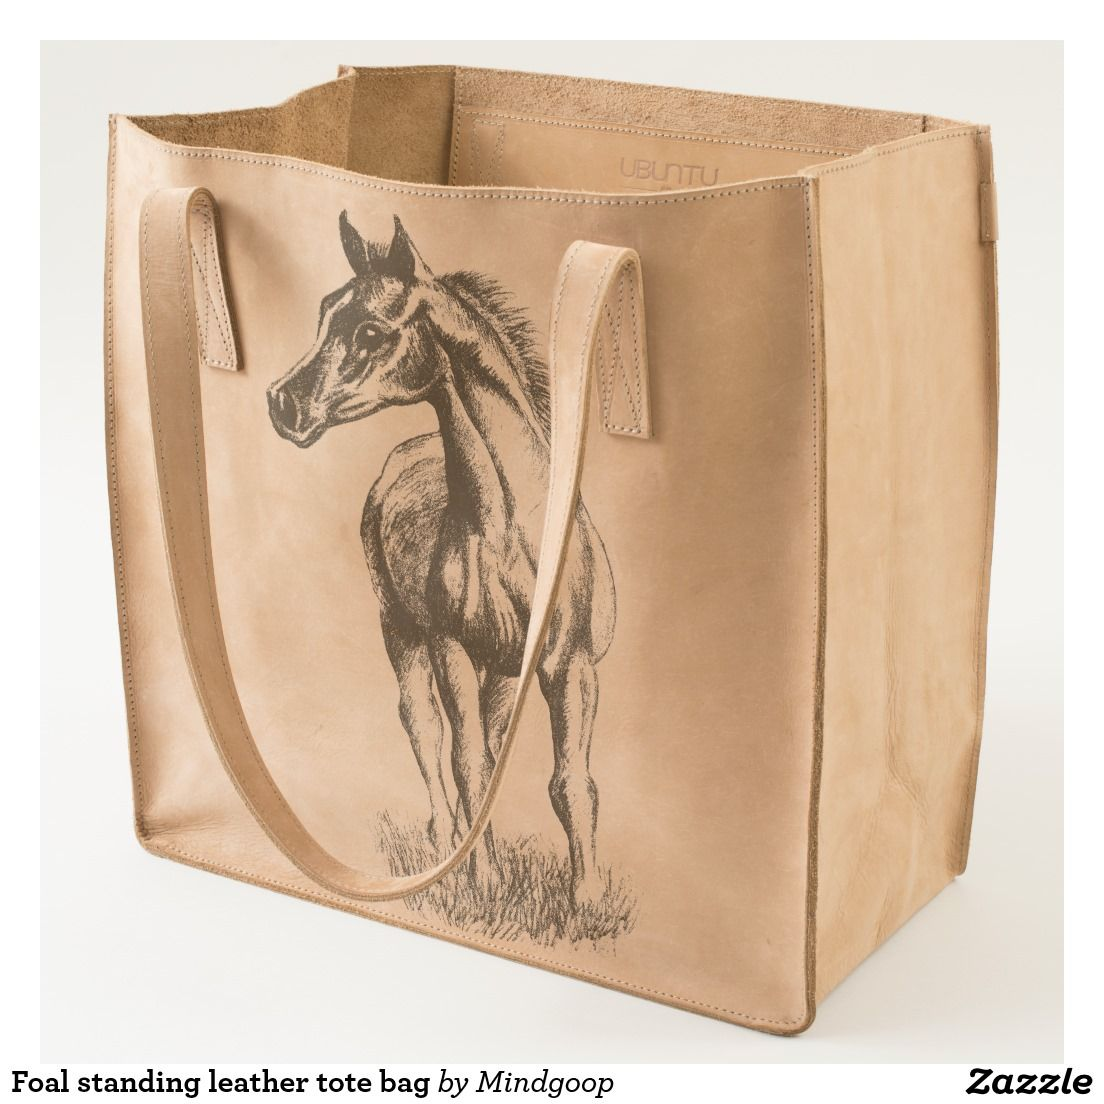 Foal standing leather tote bag